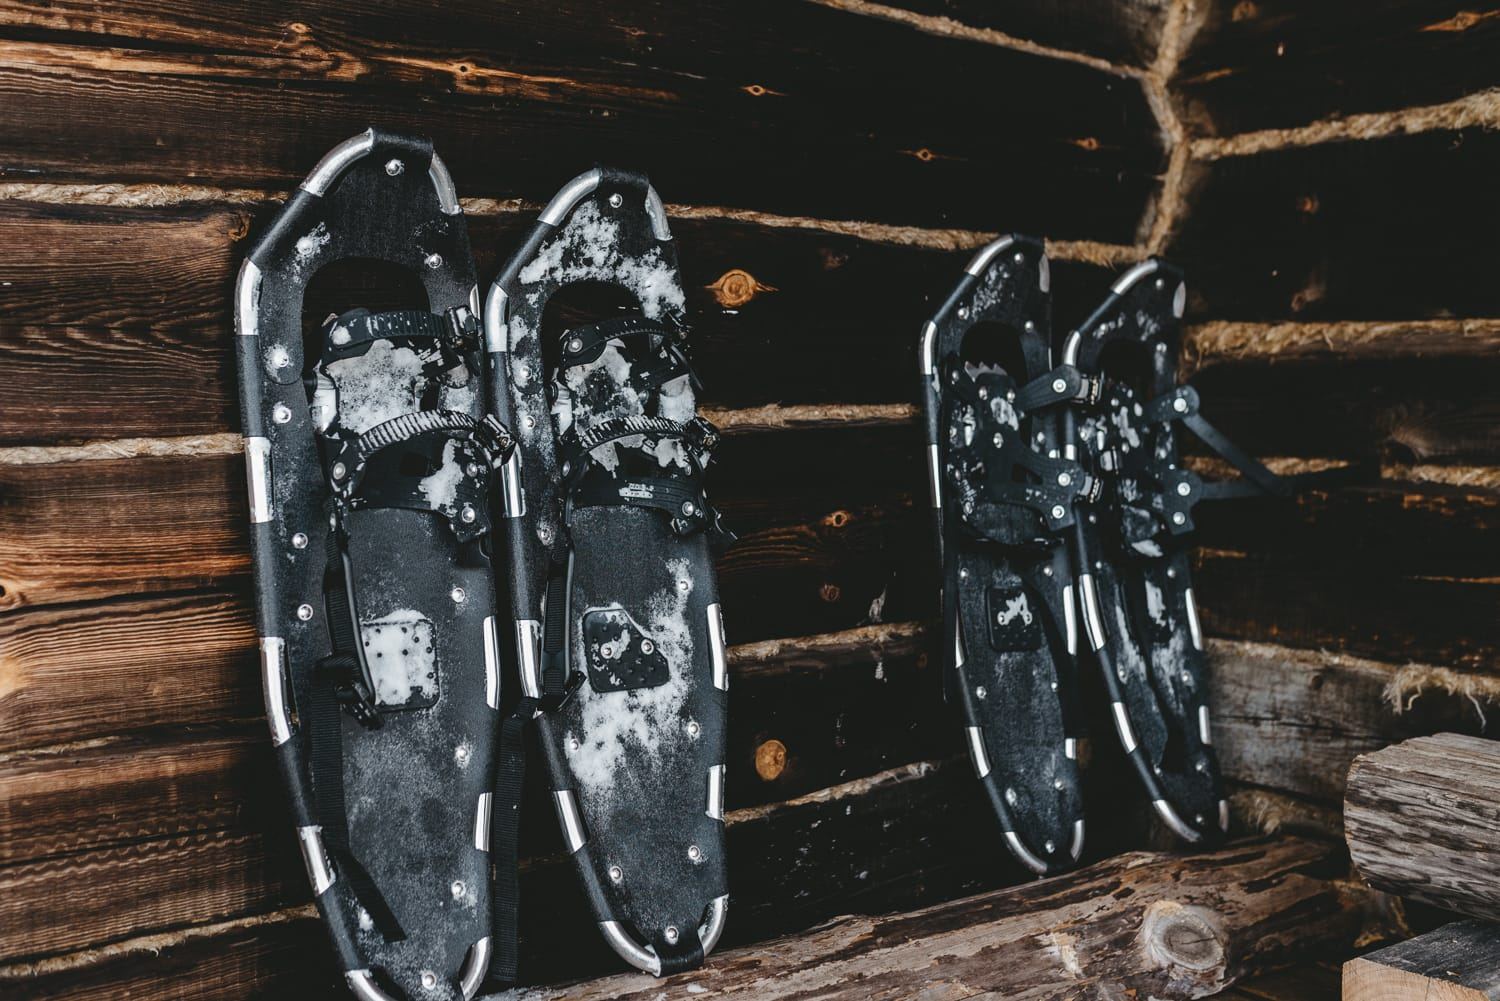 snowshoes by a cabin